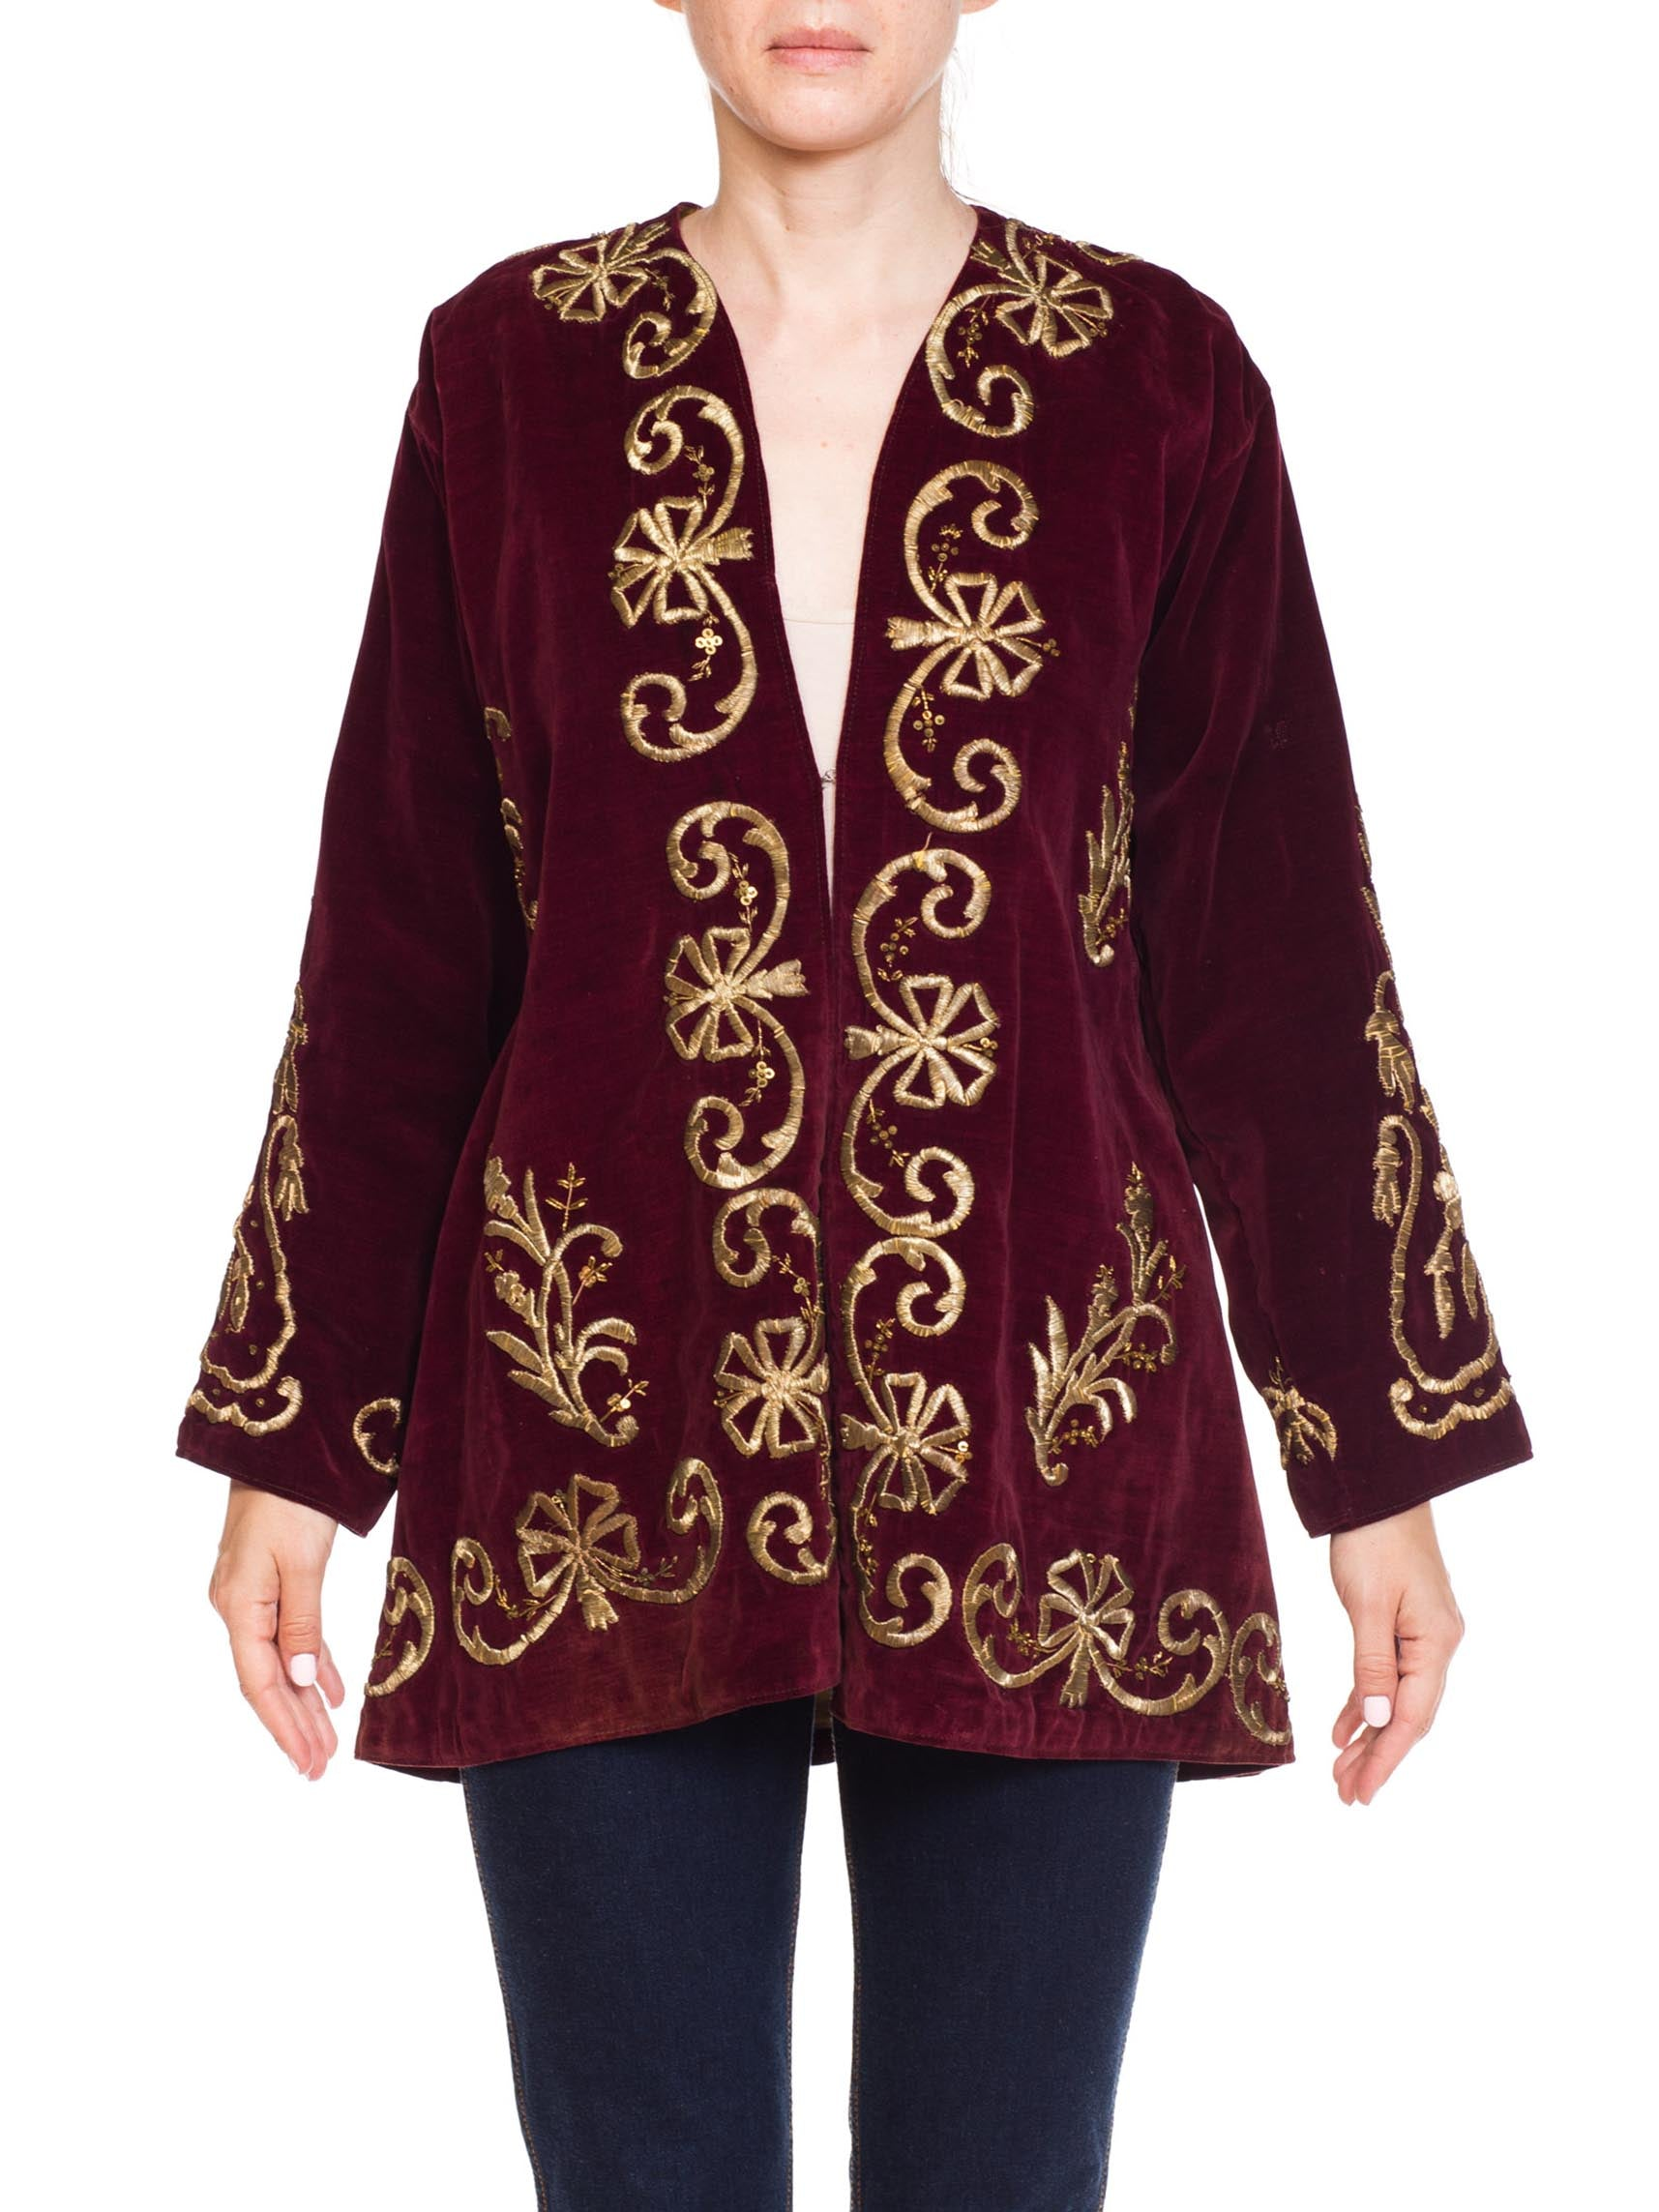 Antique Afganistan Velvet Jacket With Silver Metal Embrordary